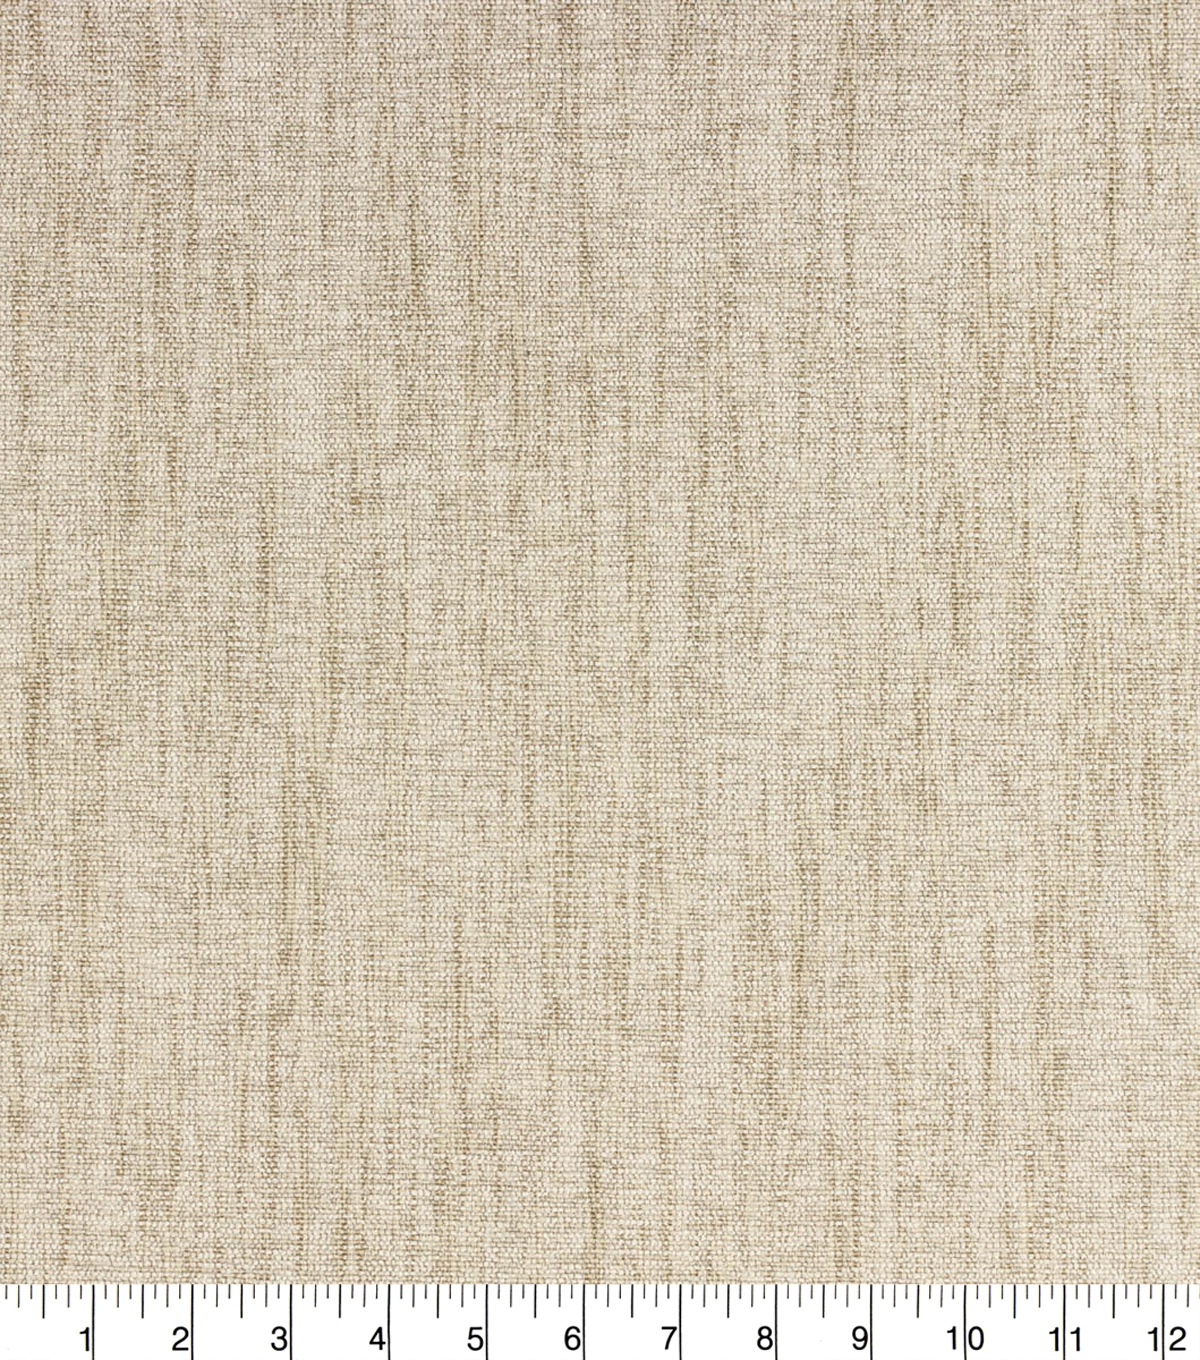 Richloom Studio Upholstery Fabric-Tuskeegee Natural